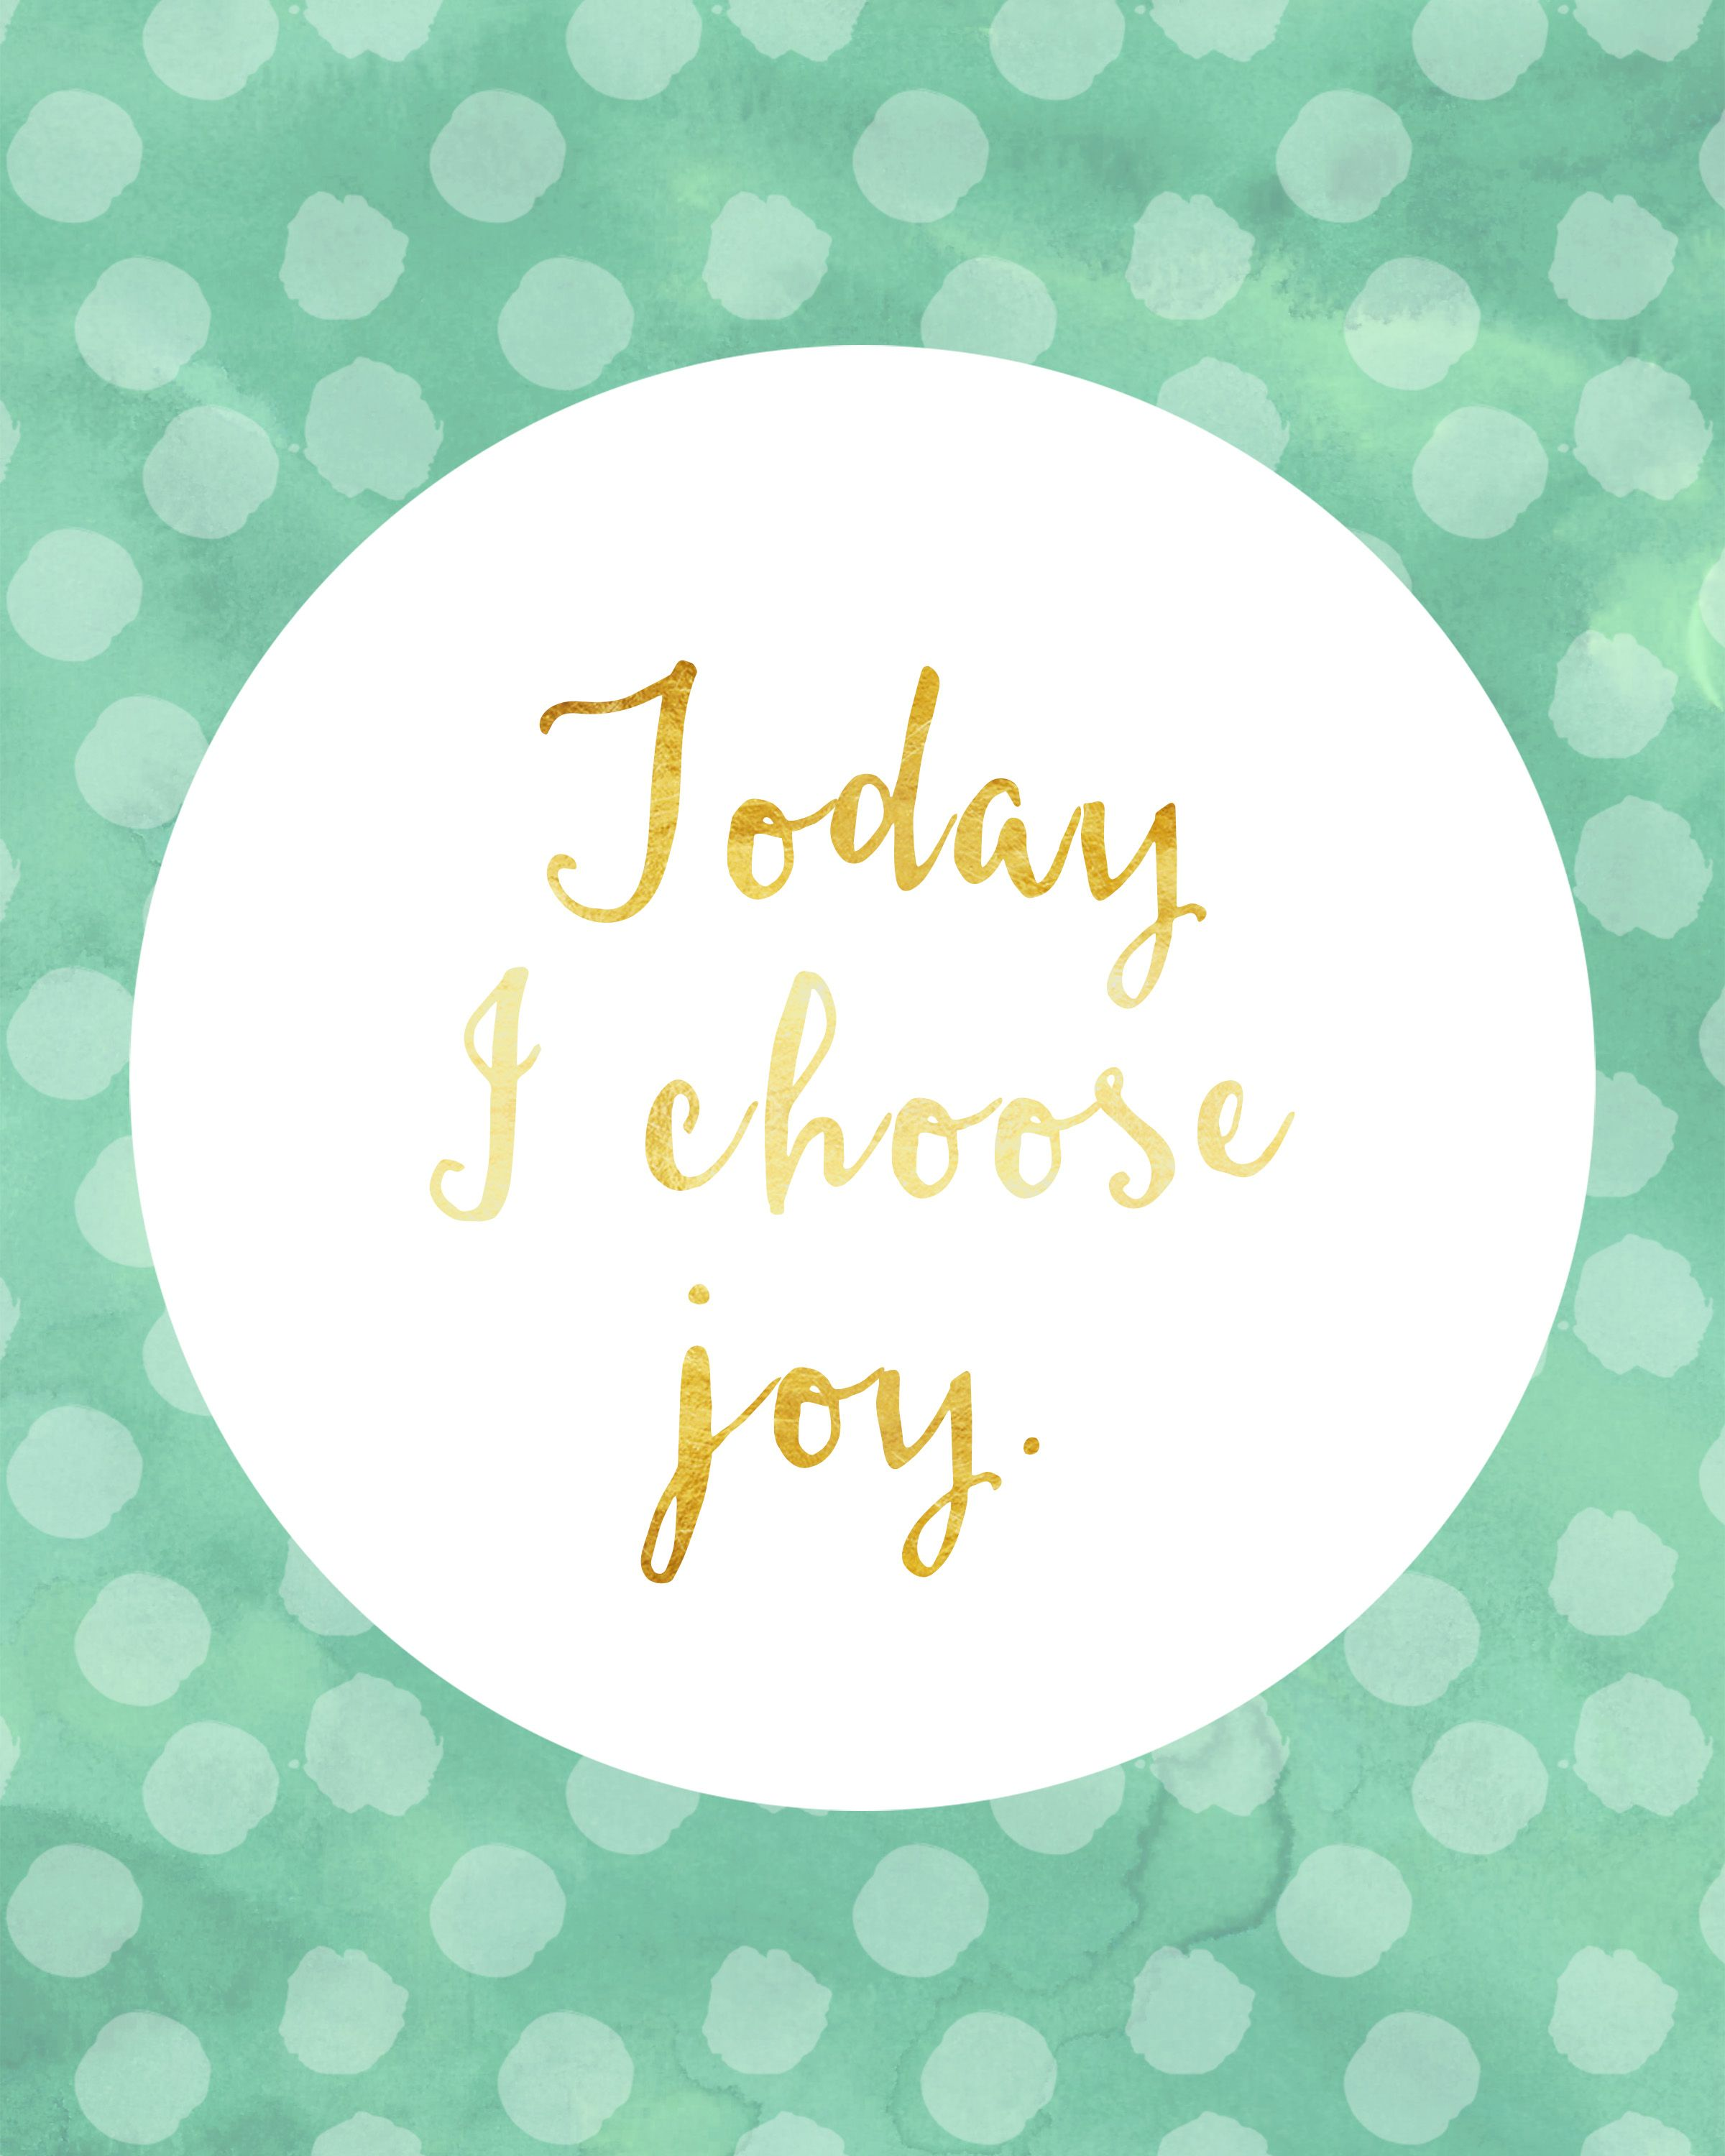 Today I Choose Joy Inspirational Quotes Pinterest Choose Joy